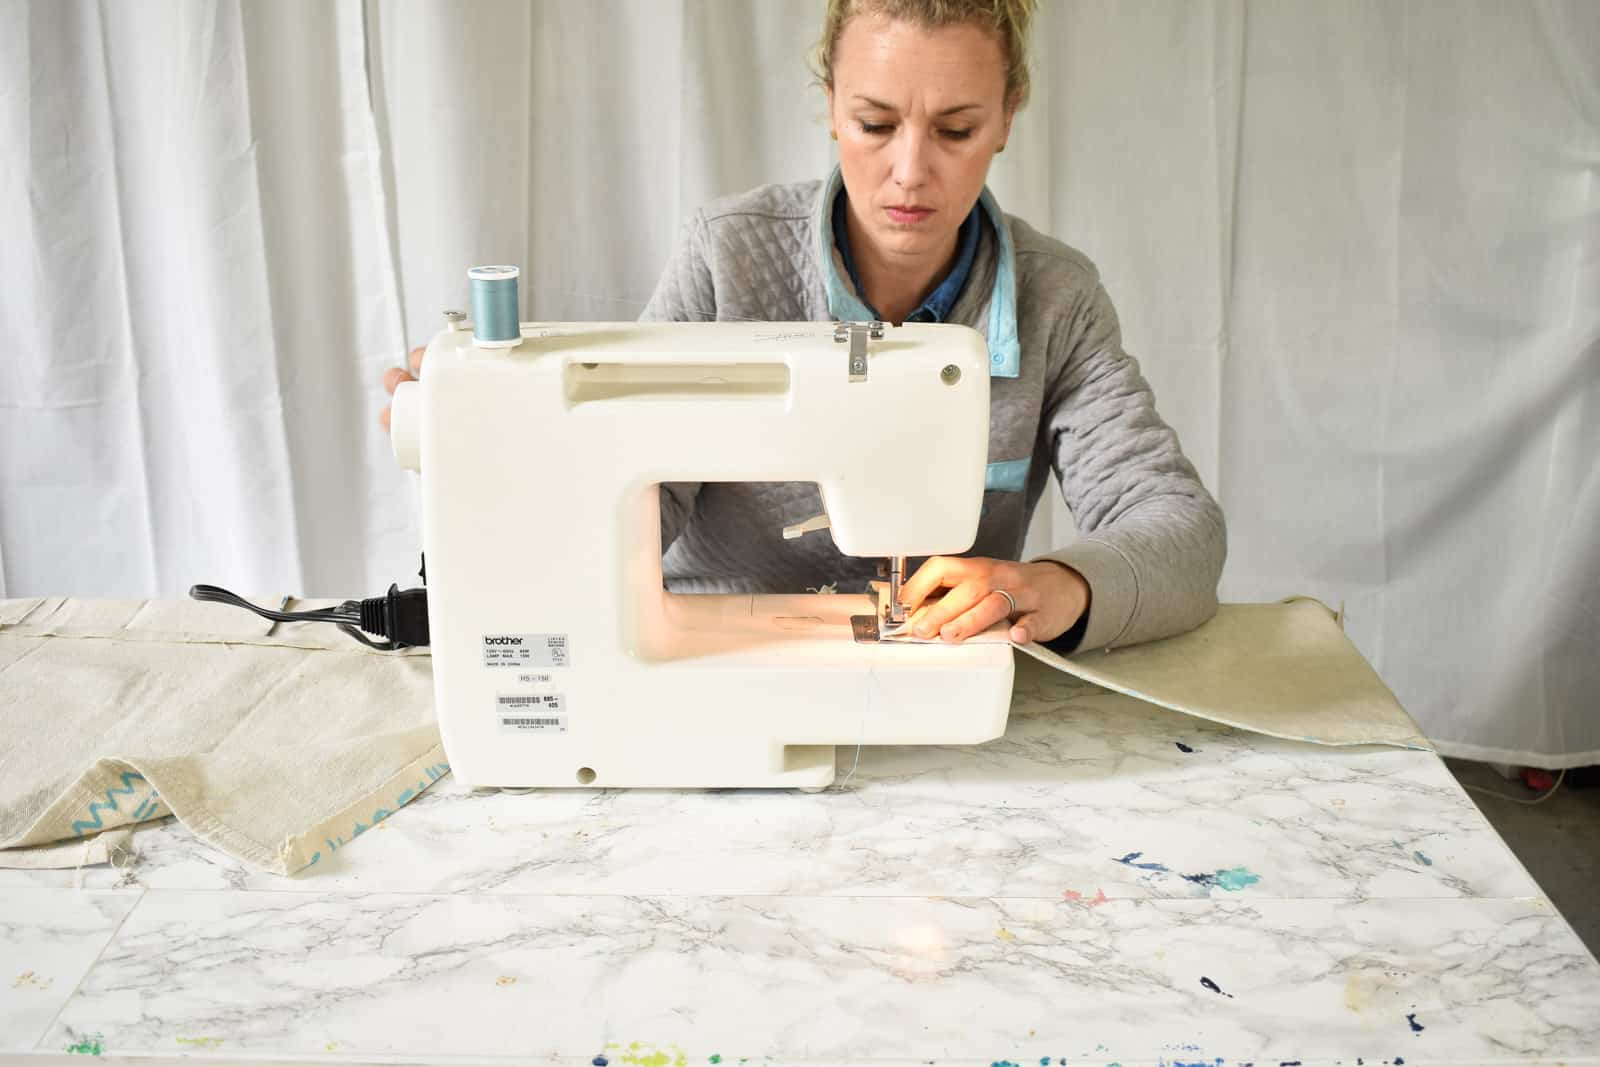 sew or glue the seams of placemat